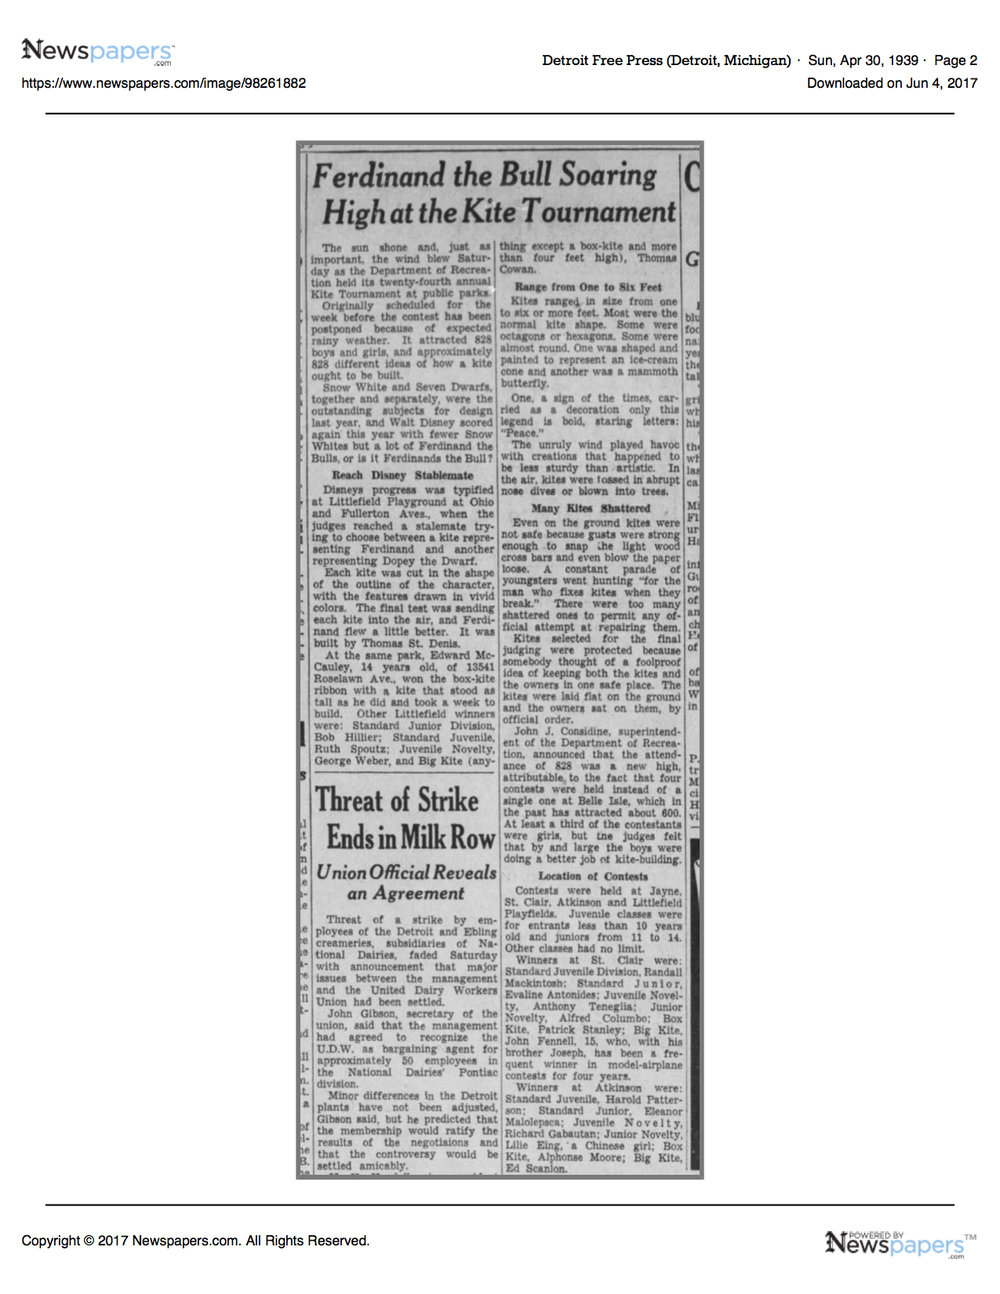 Detroit_Free_Press_Sun__Apr_30__1939_.jpg